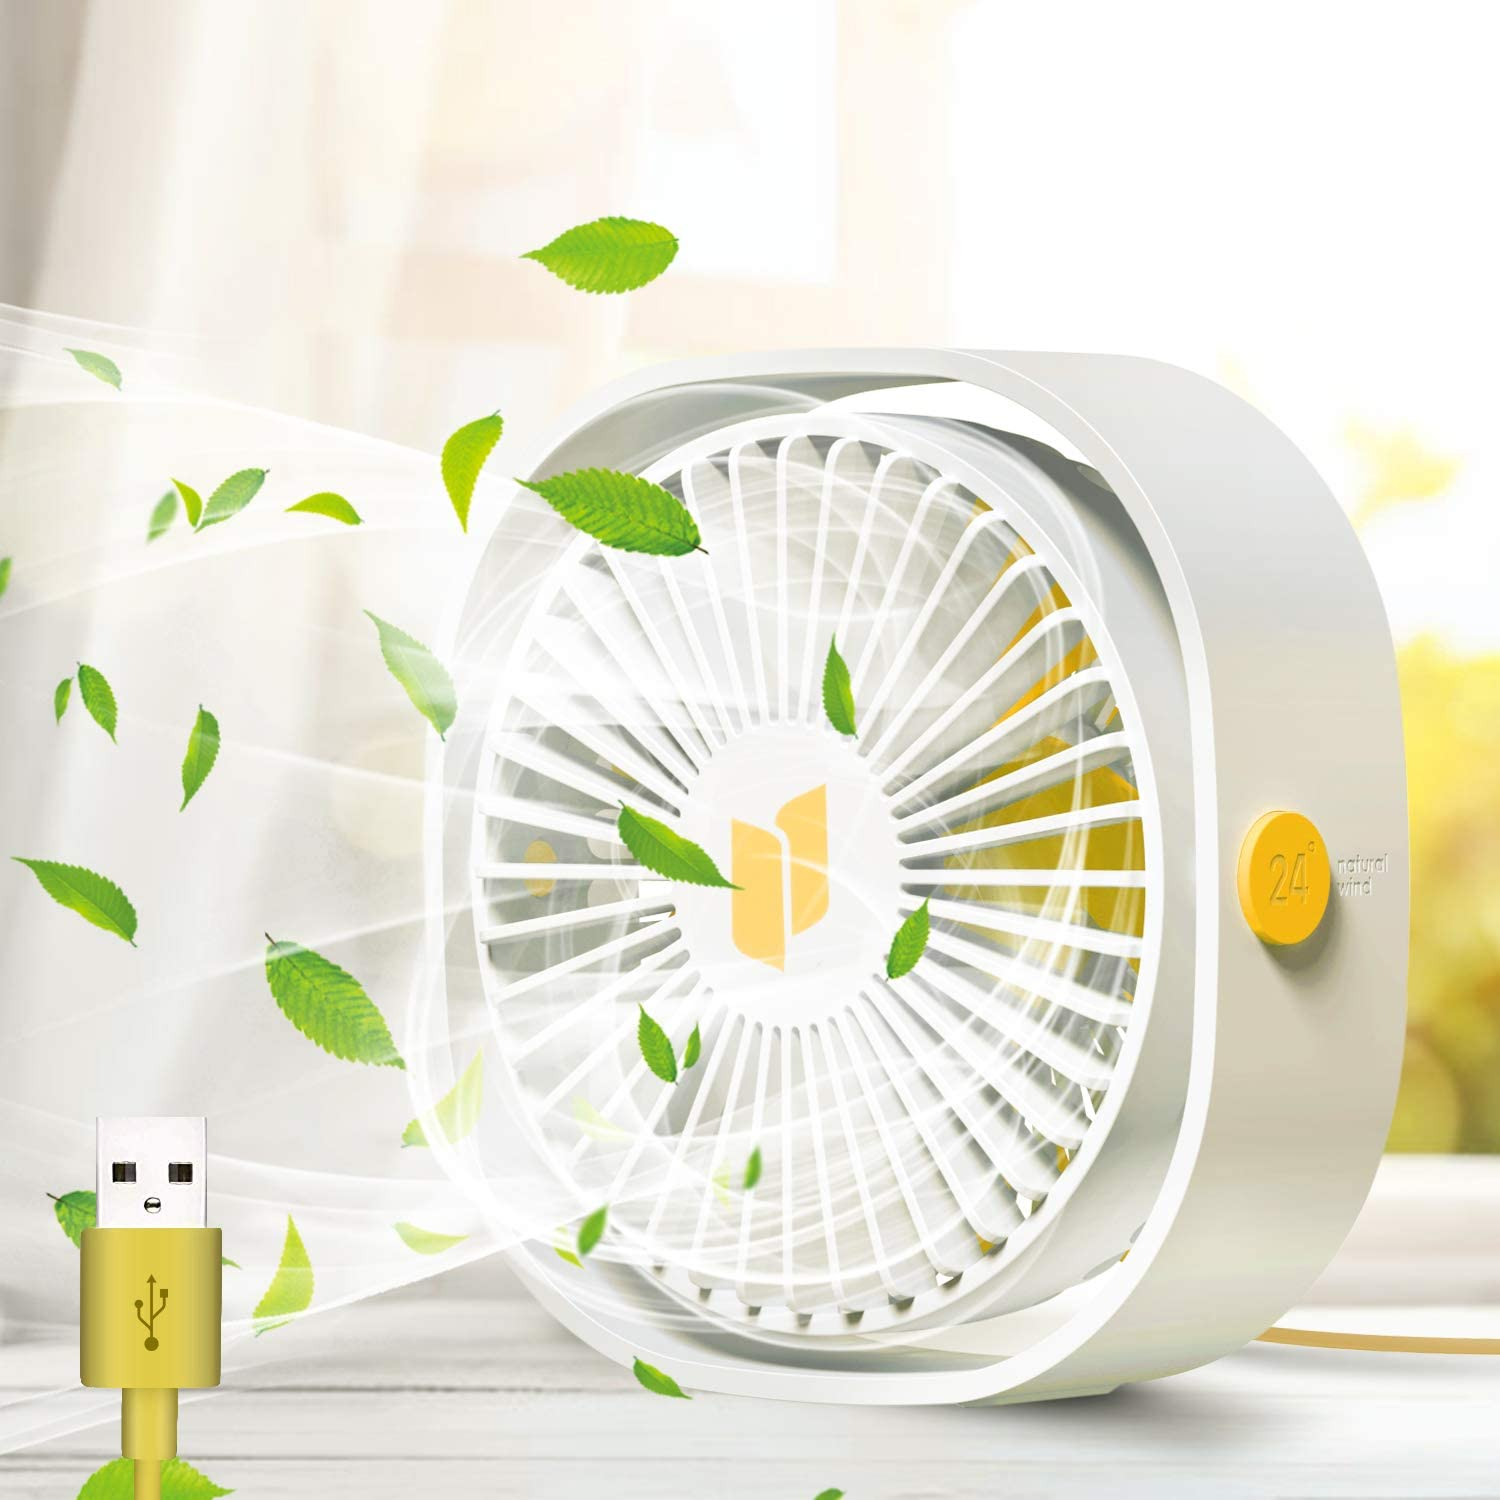 USB Fan, Tencoz USB Desk Fan, Portable Mini USB Fan, Fan USB 3 Speeds Adjustable, Desk Fan USB Desk Fan with USB, USB Table Fan Silent Ideal For Home Office Outdoor Travel USB Powered